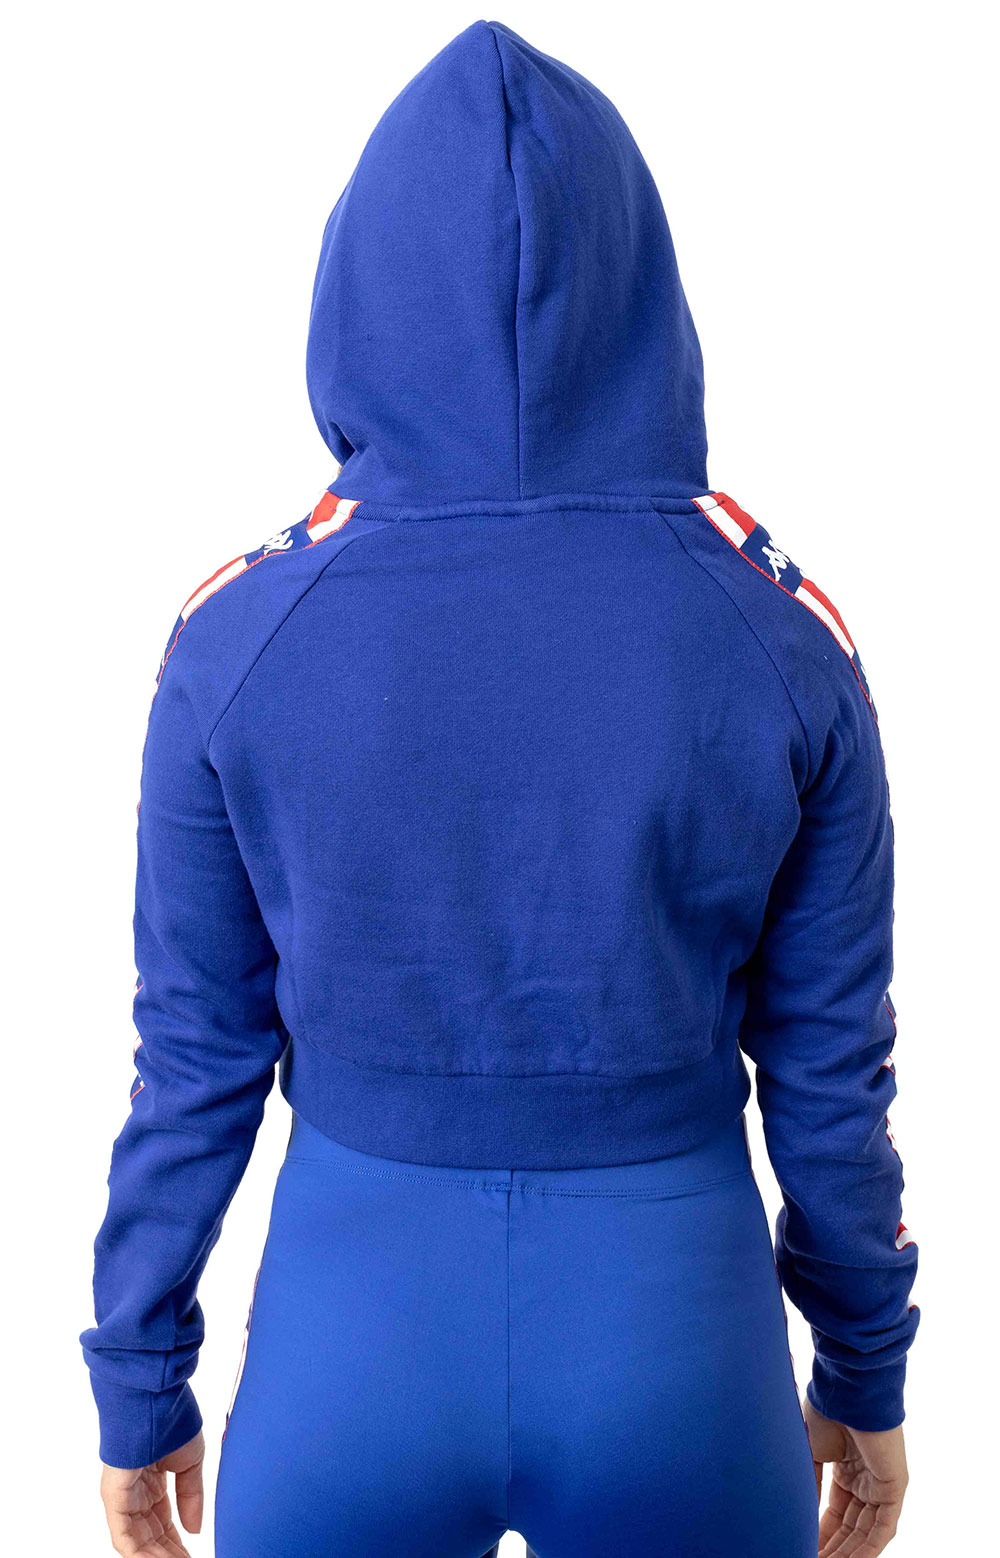 Authentic LA Berry Pullover Hoodie - Blue/Blue 3